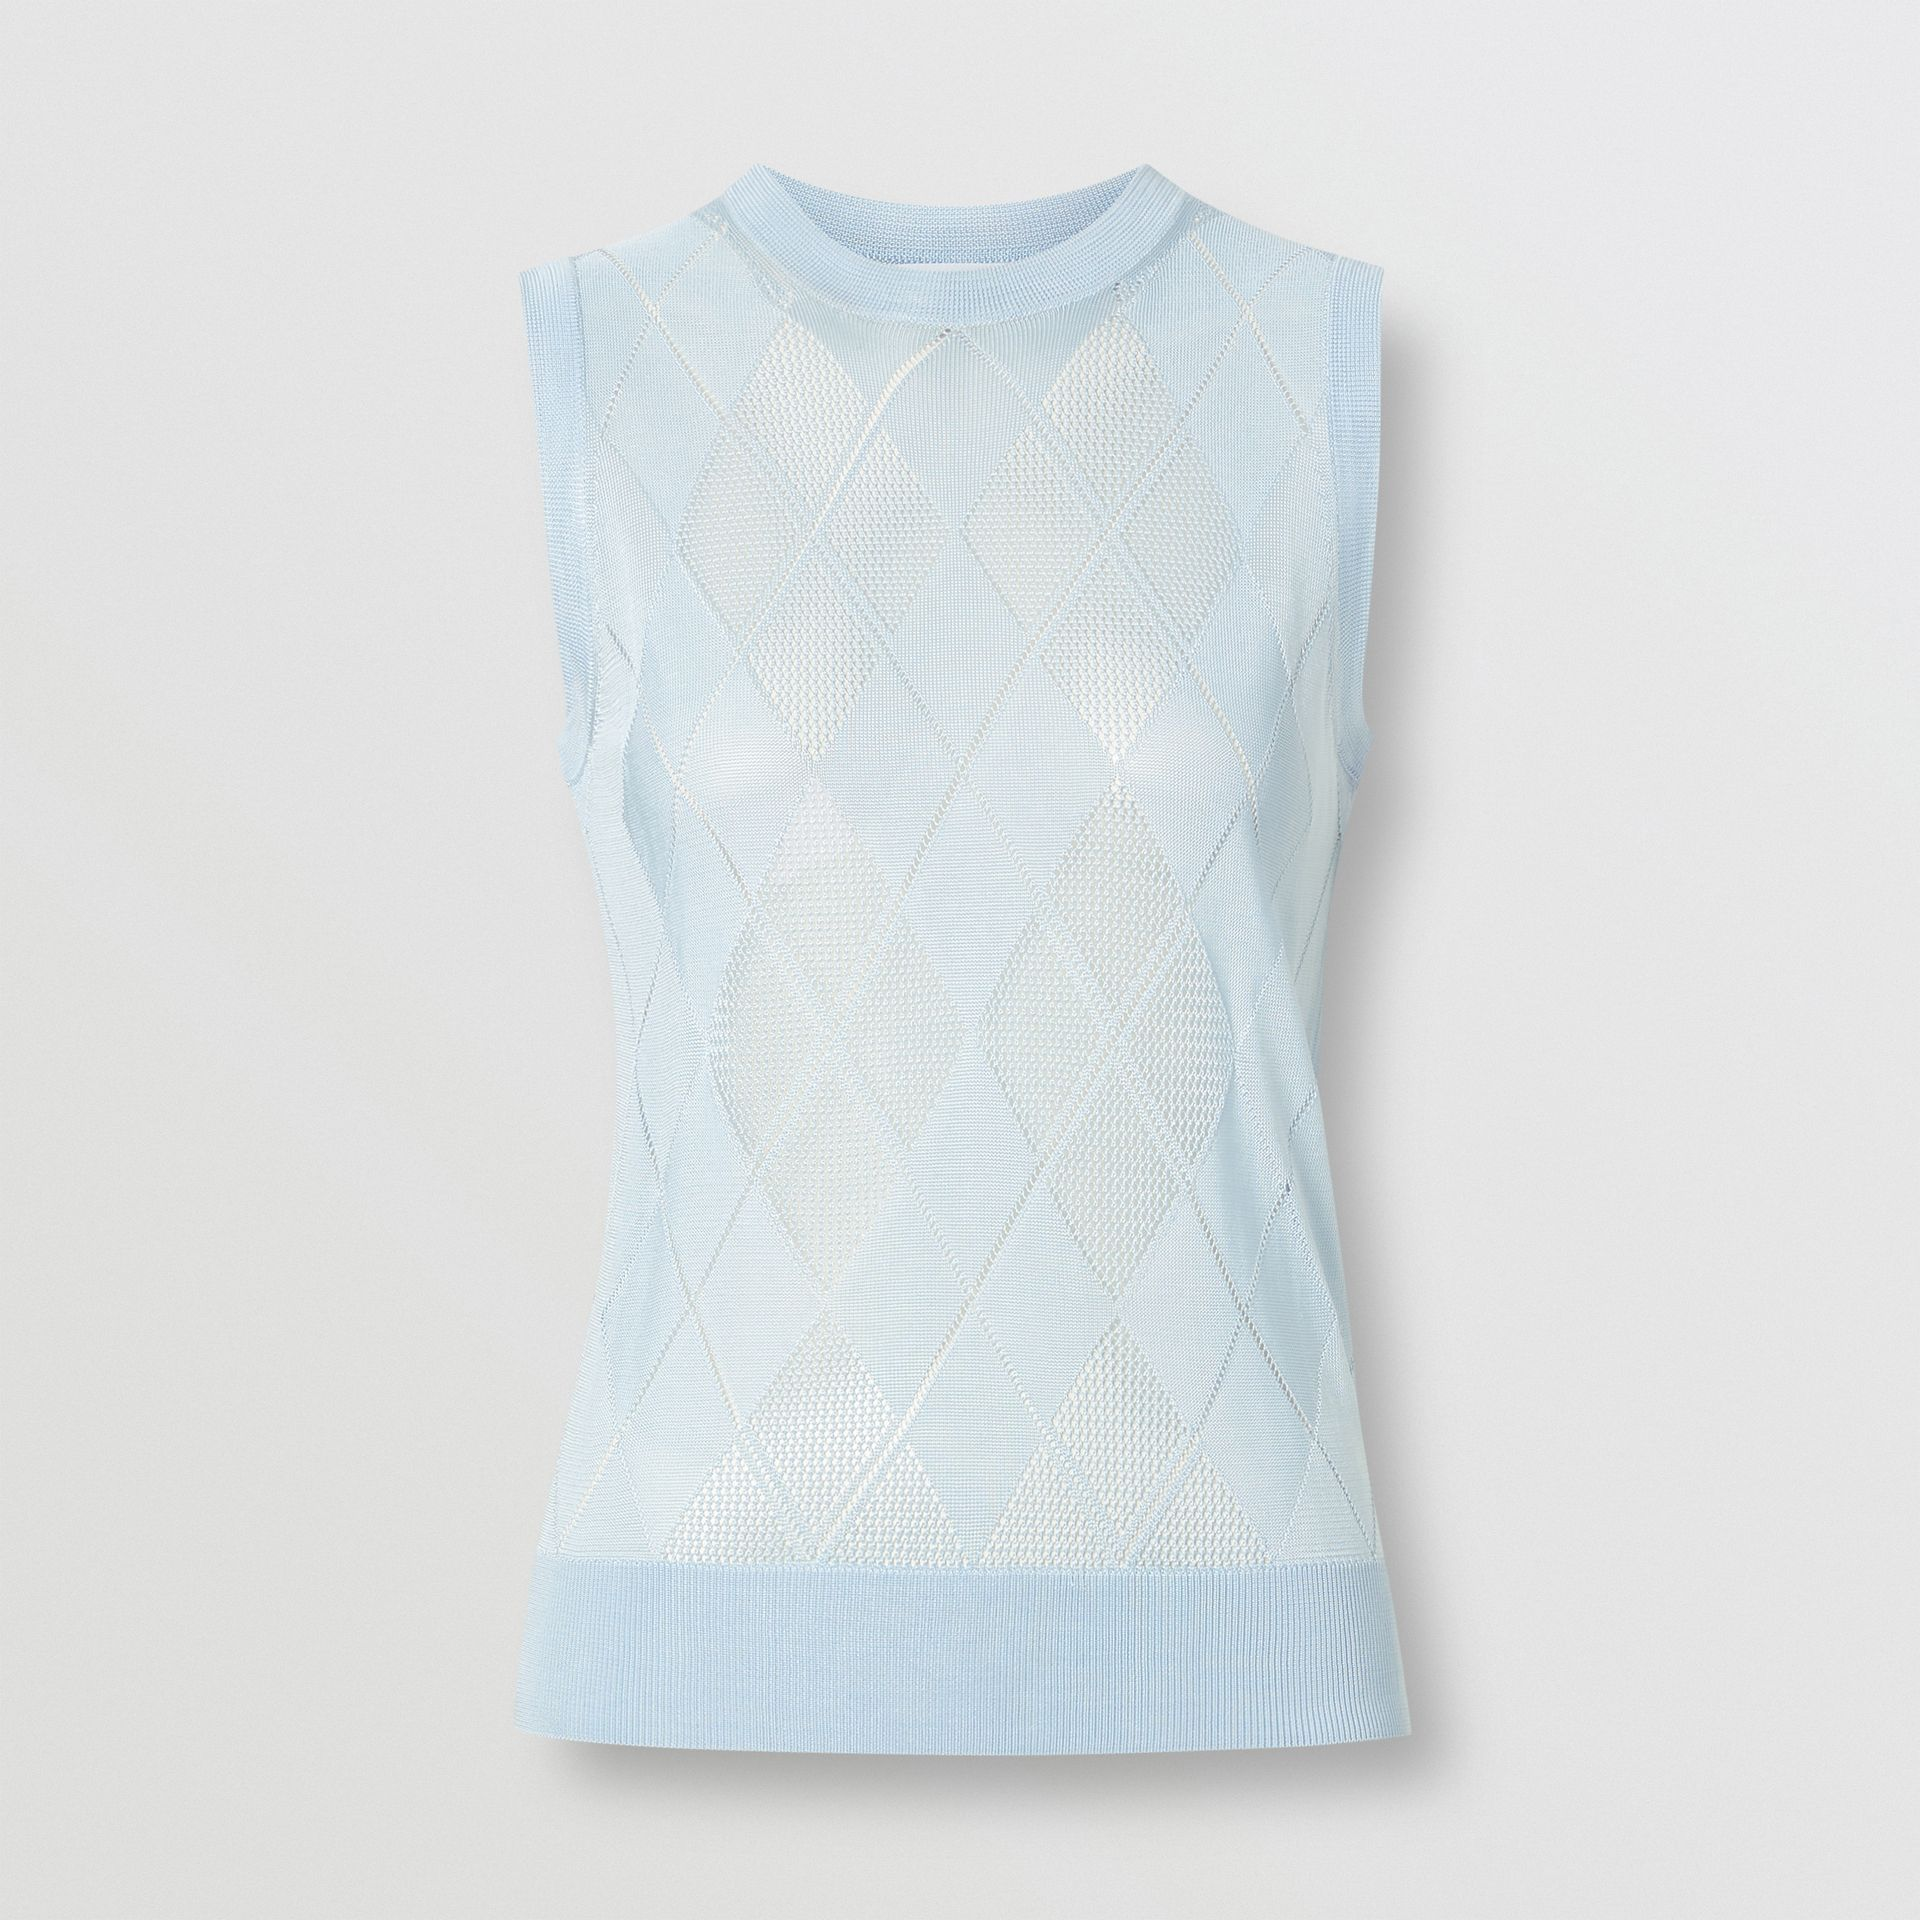 Monogram Motif Pointelle Knit Vest in Pale Blue - Women | Burberry - gallery image 3